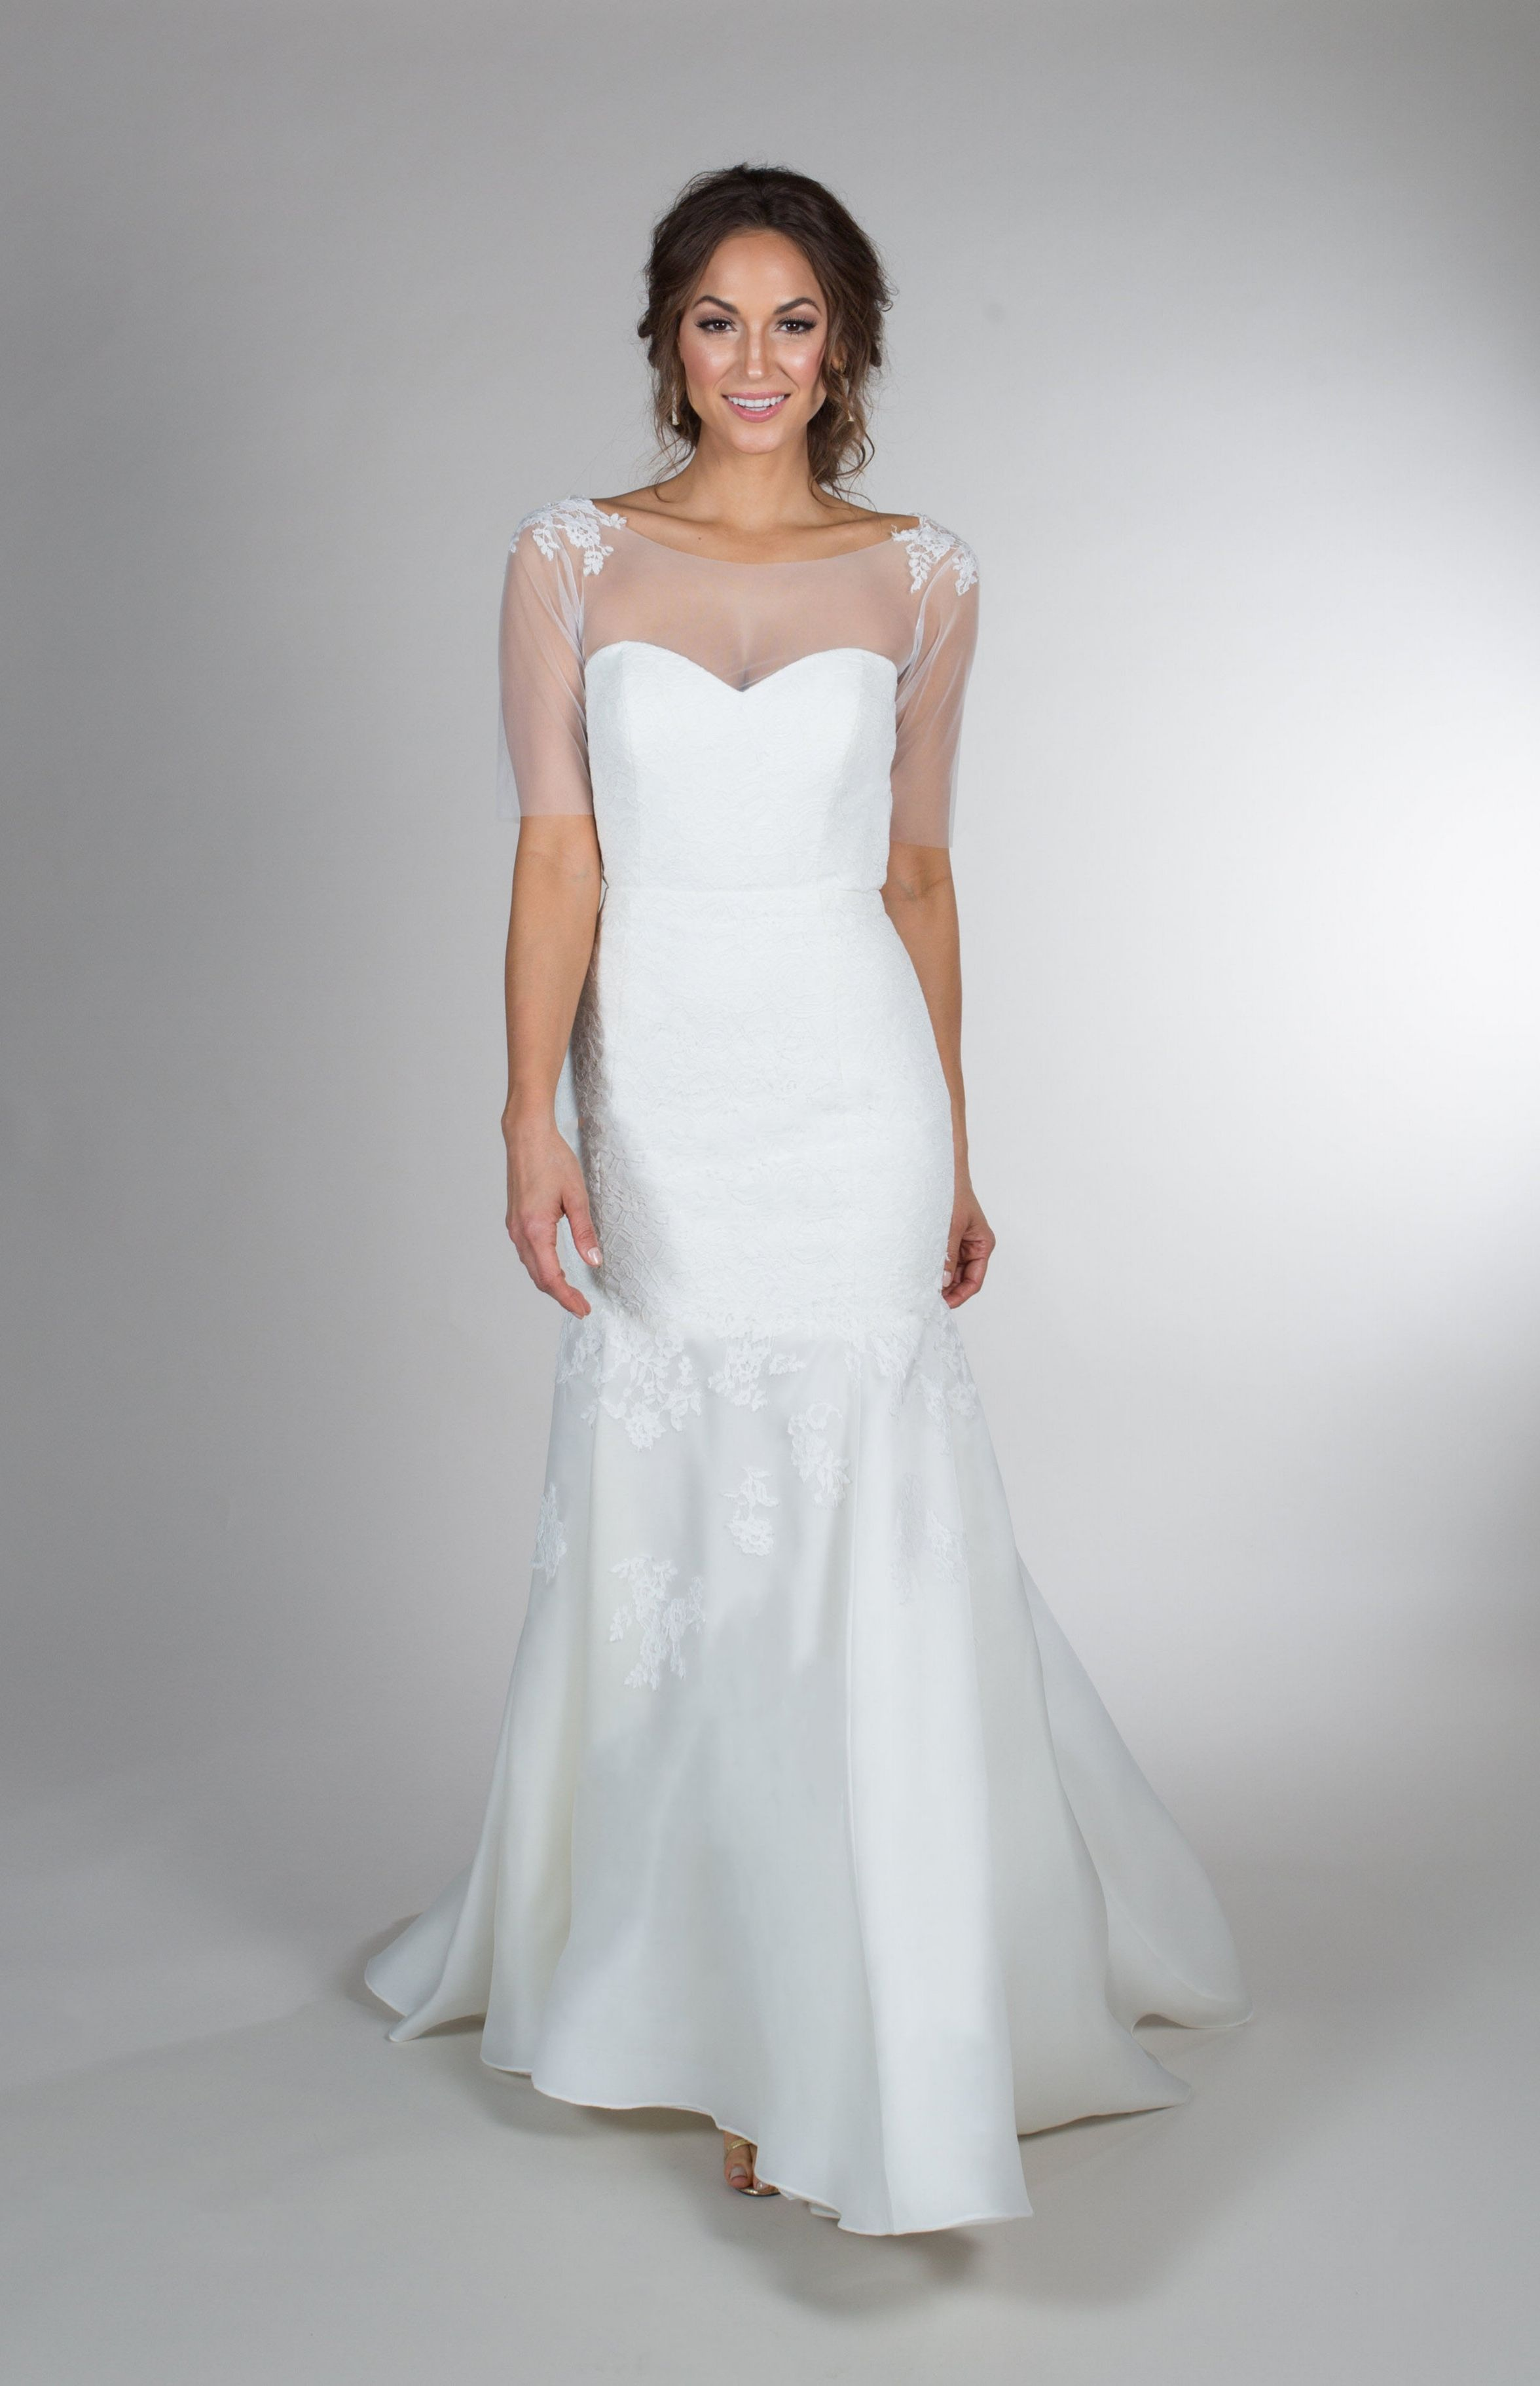 This trumpet style wedding gown features an illusion bodice with